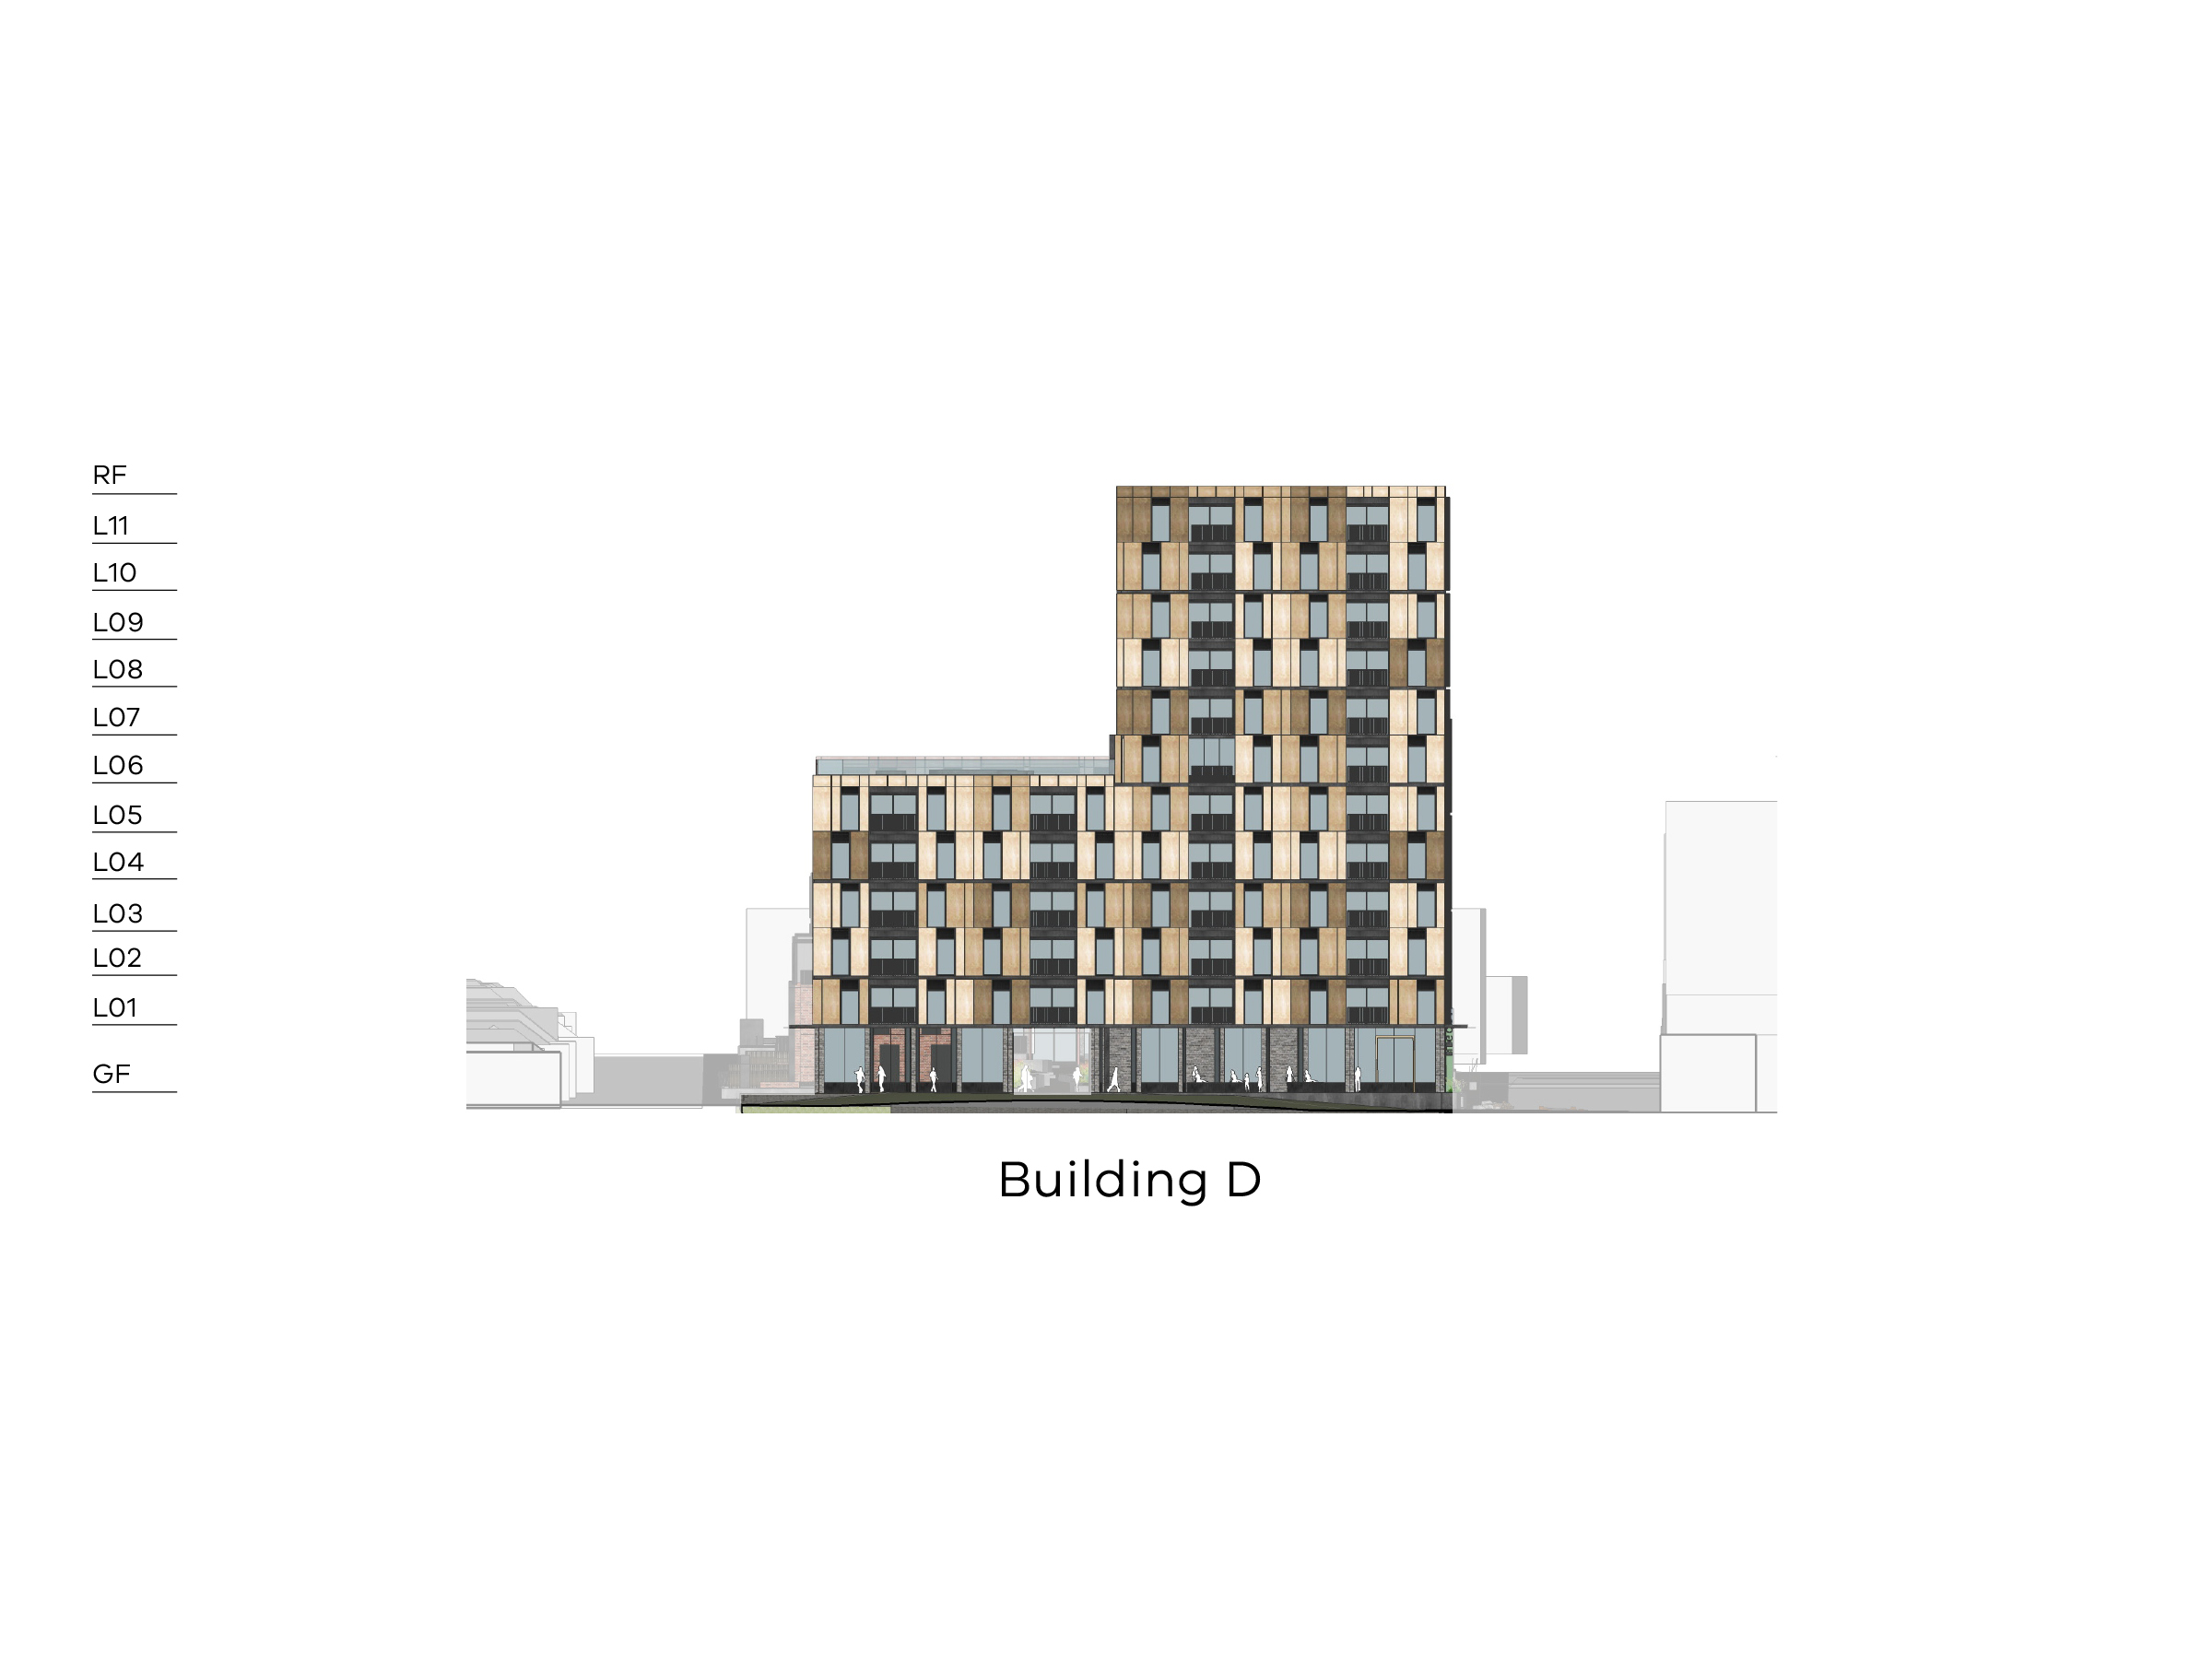 Diagram showing the height of building D as seen from the northern public space. Building D has a ground floor, level 1-5 and a flat roof on the Bendigo Street side and a ground floor, level 1-11 and a flat roof on the Bangs Street side.